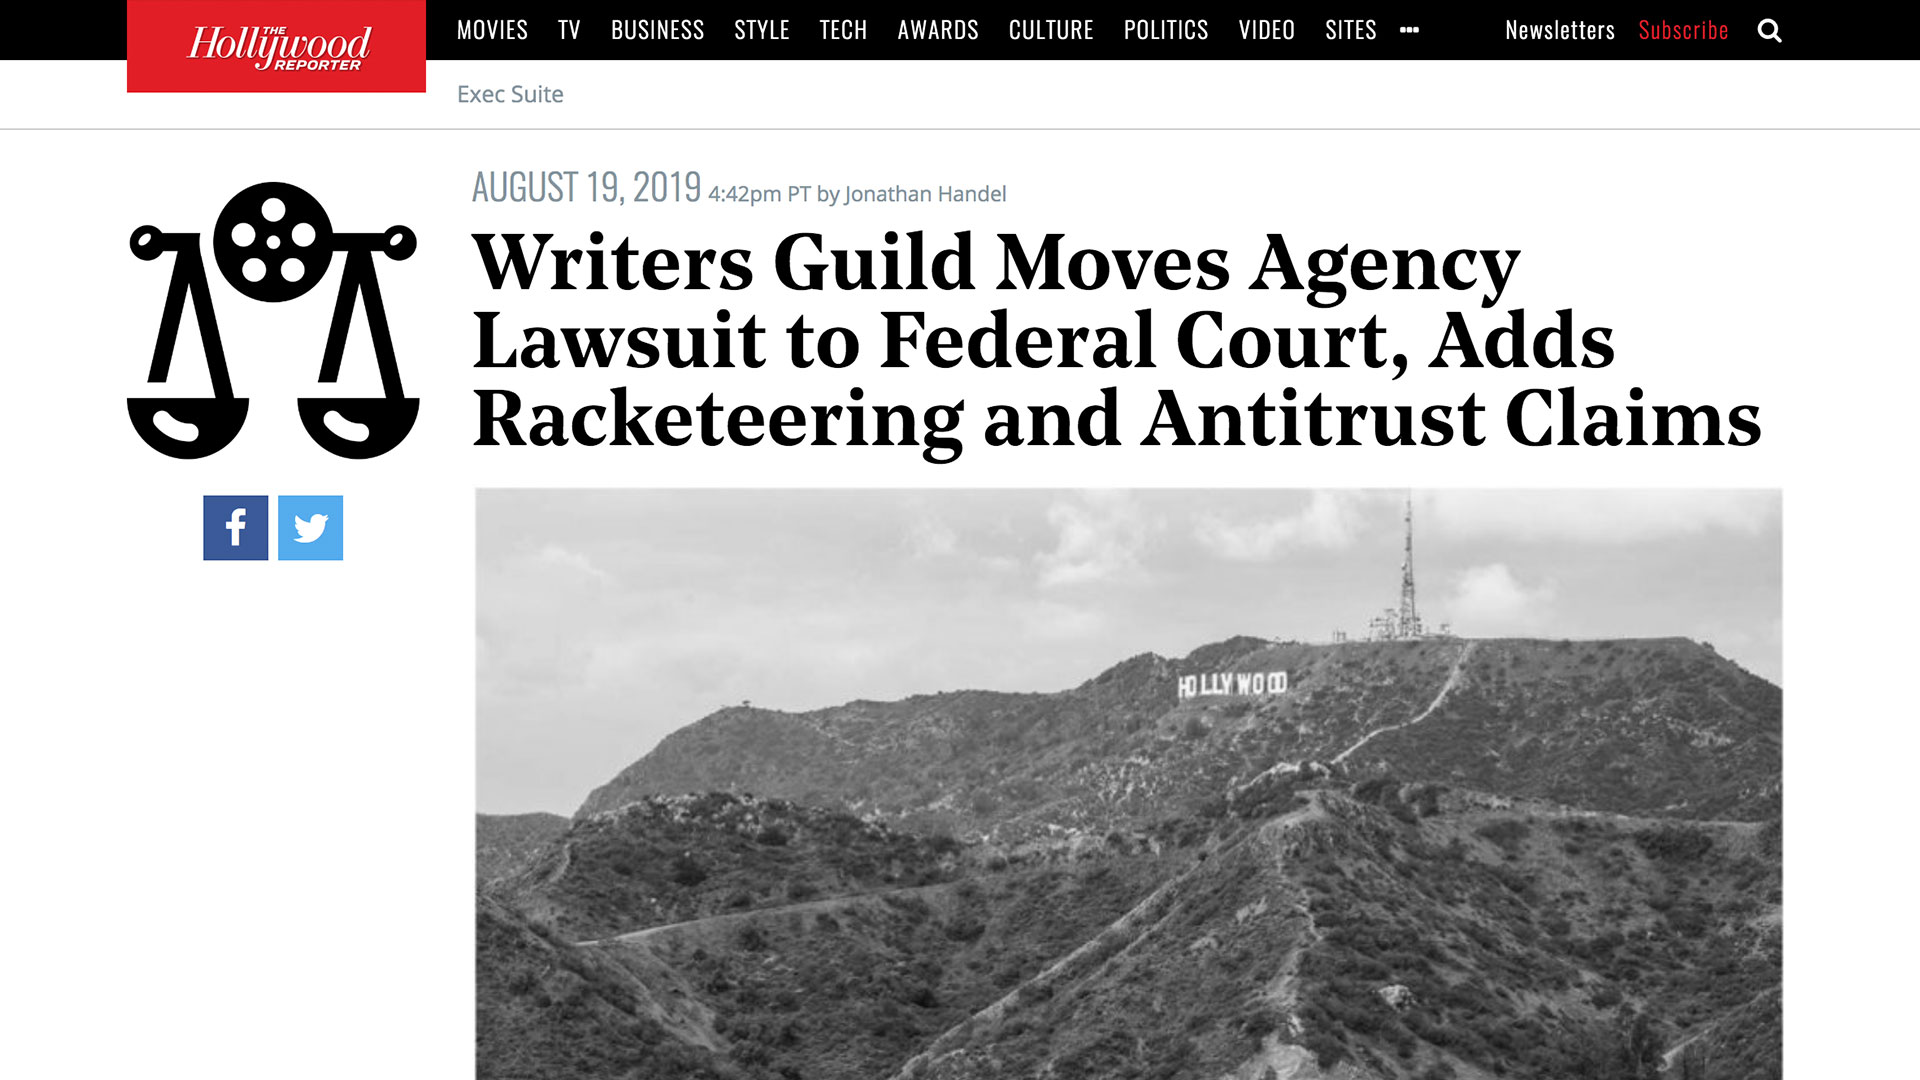 Fairness Rocks News Writers Guild Moves Agency Lawsuit to Federal Court, Adds Racketeering and Antitrust Claims